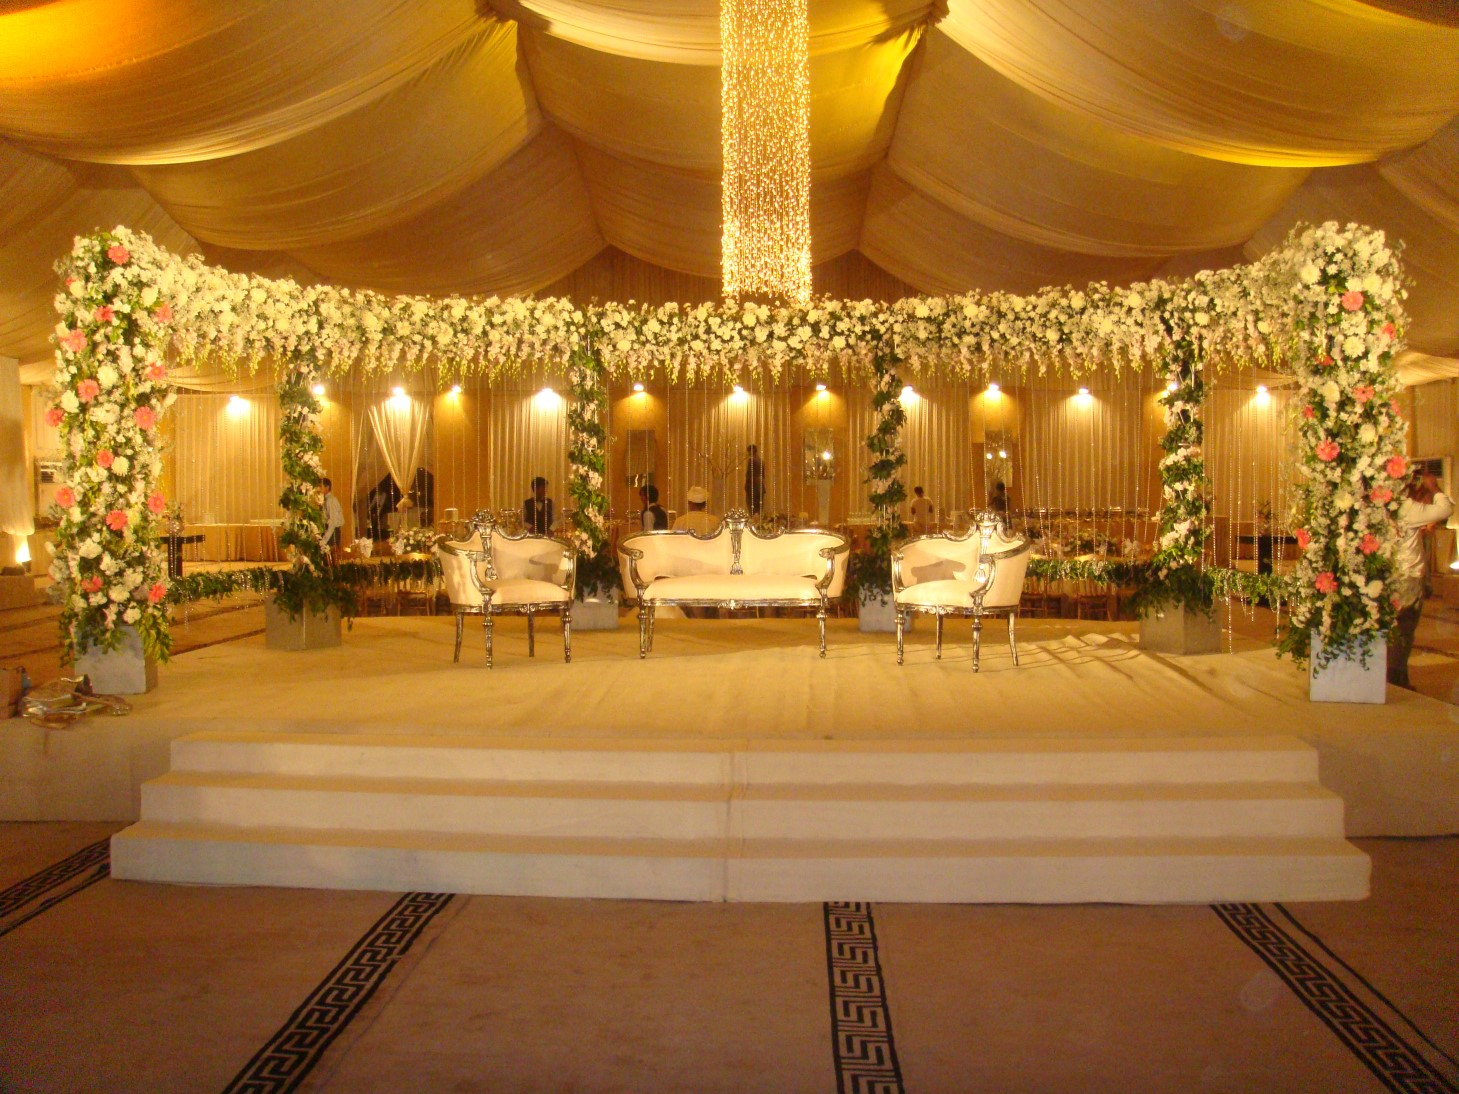 wedding stage decorations in - photo #35